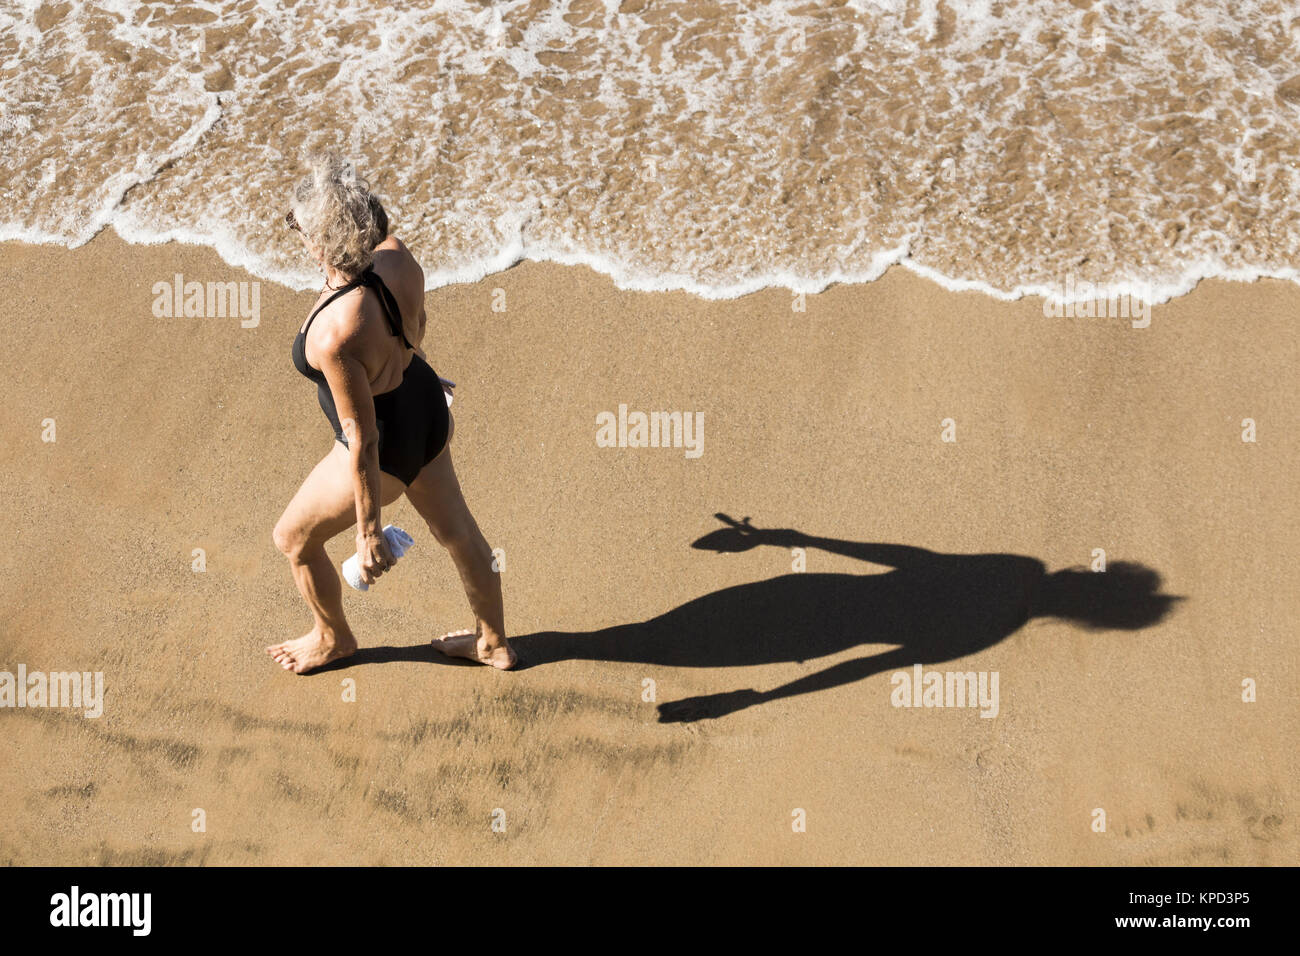 Mature woman in swimming costume walking on beach in Spain - Stock Image